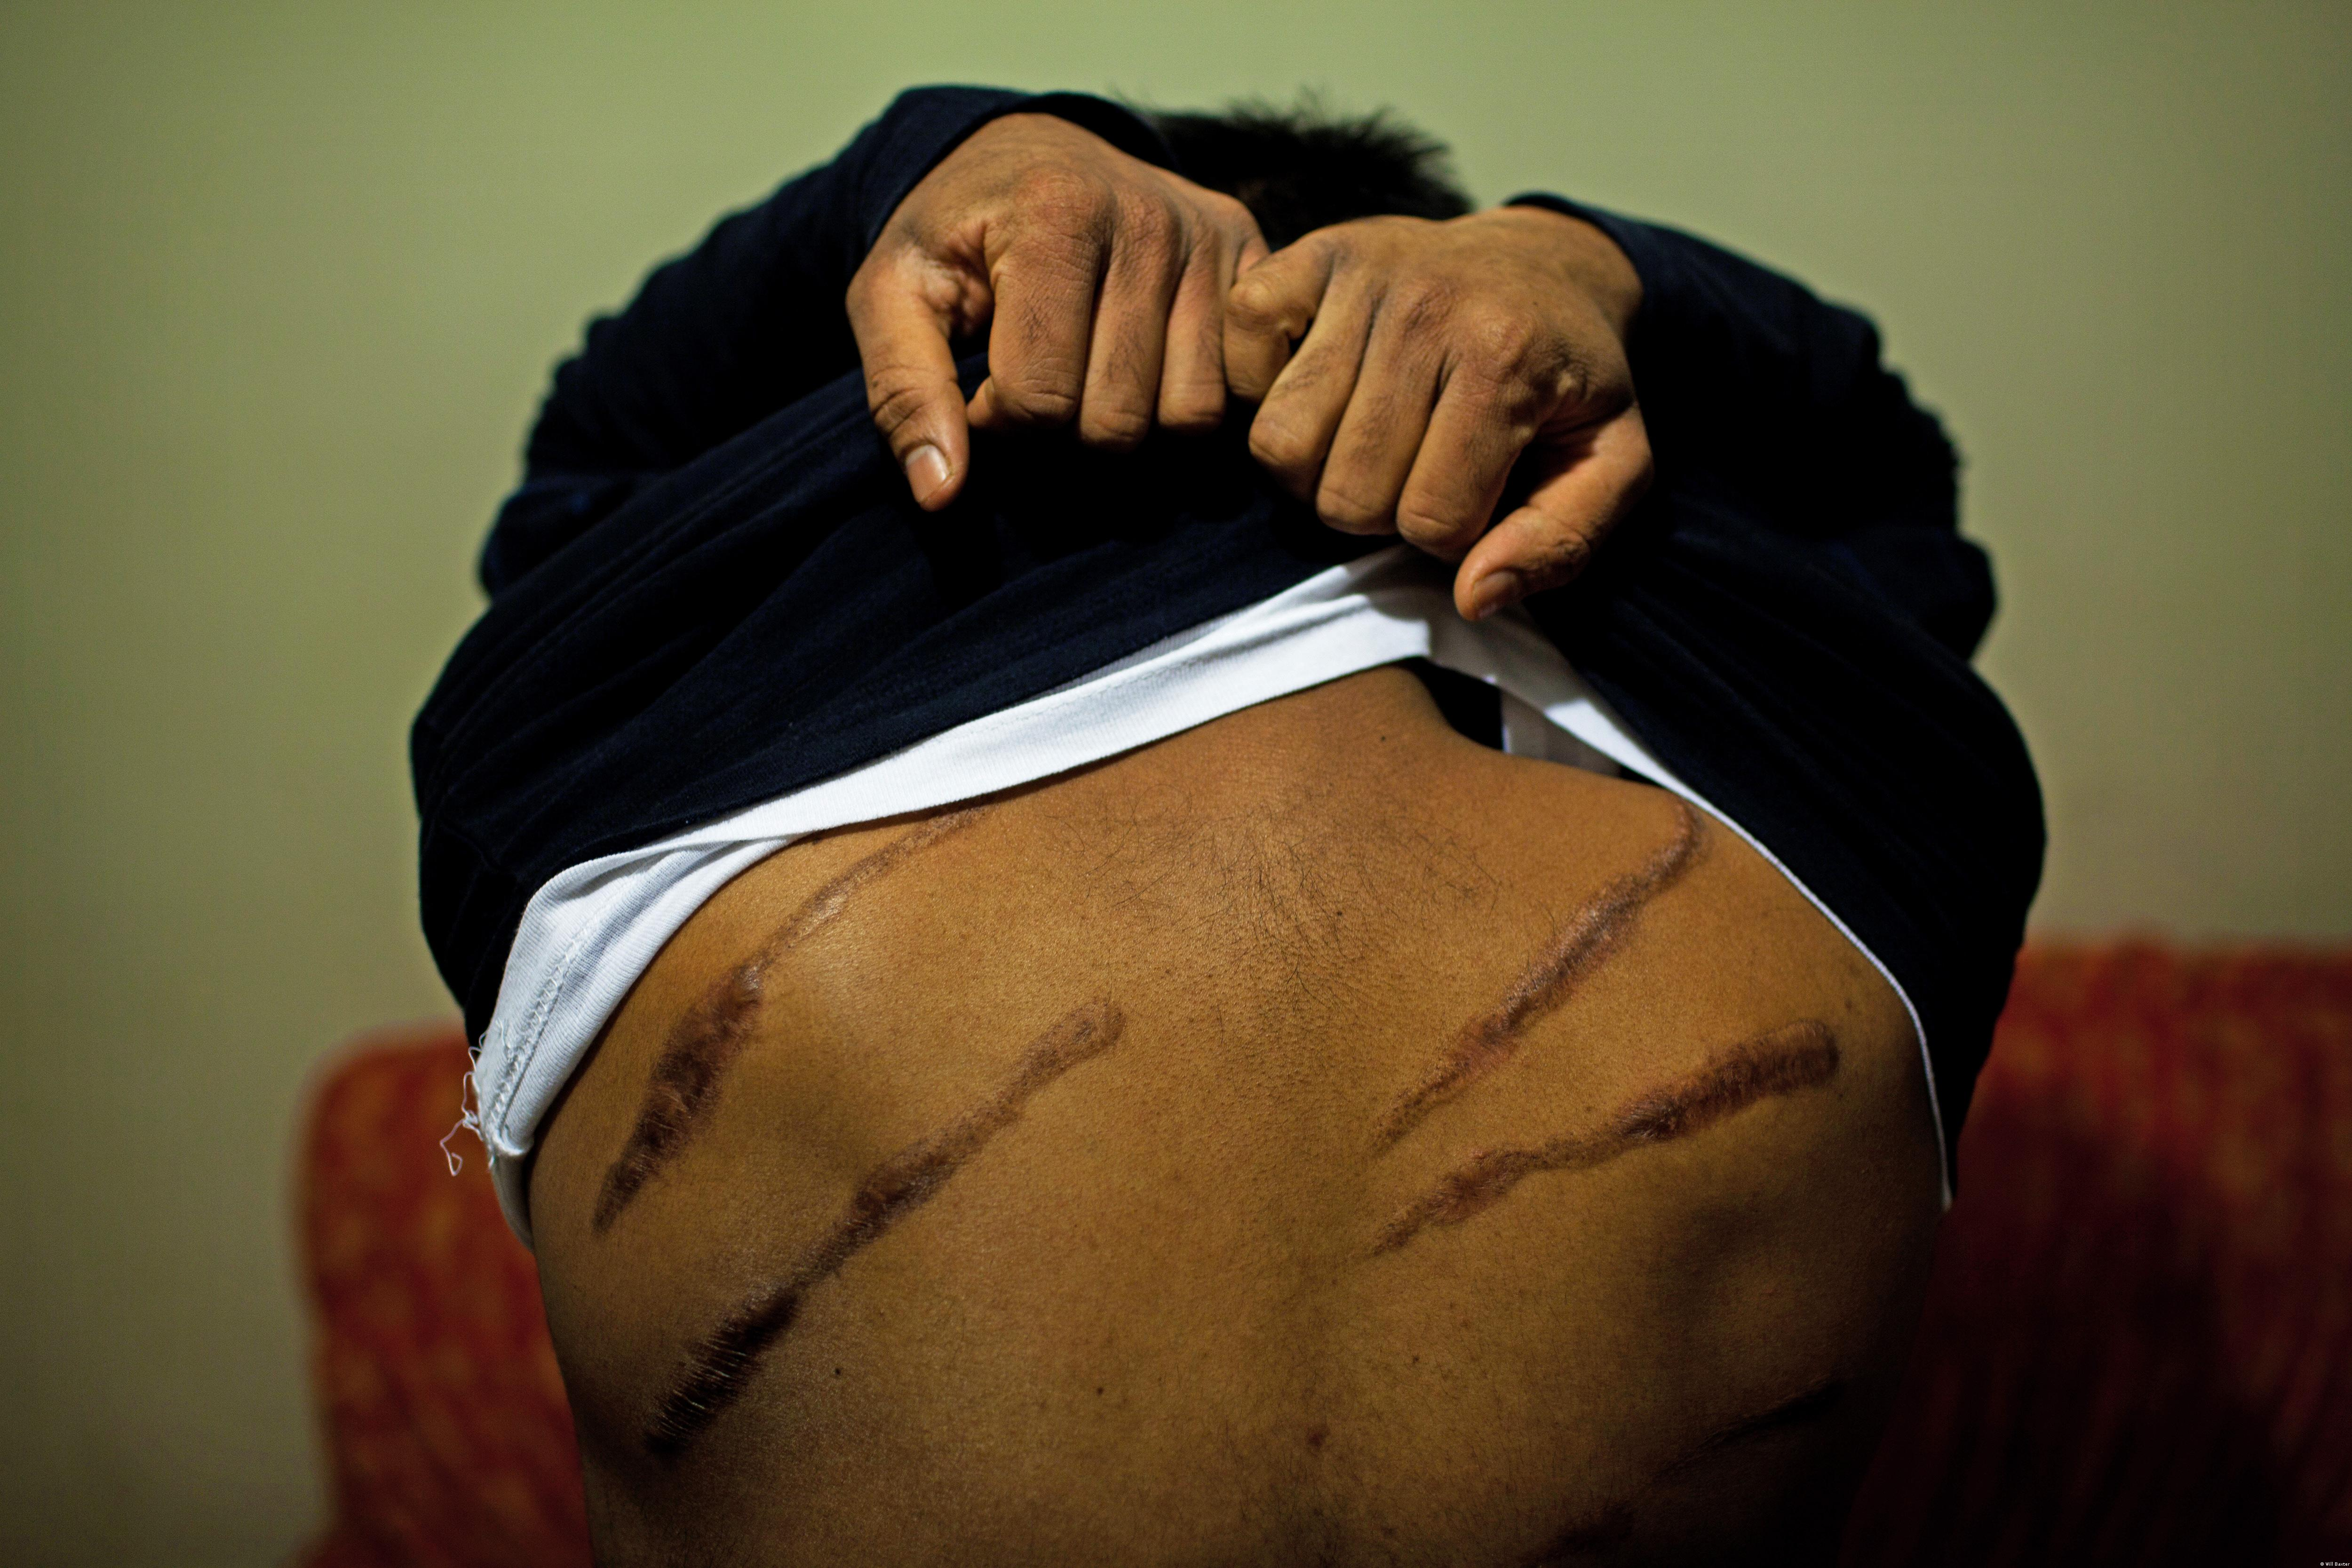 Branding marks on Tamil torture survivors: Photo by Will Baxter, for Tainted Peace: Torture in Sri Lanka since May 2009, Freedom from Torture